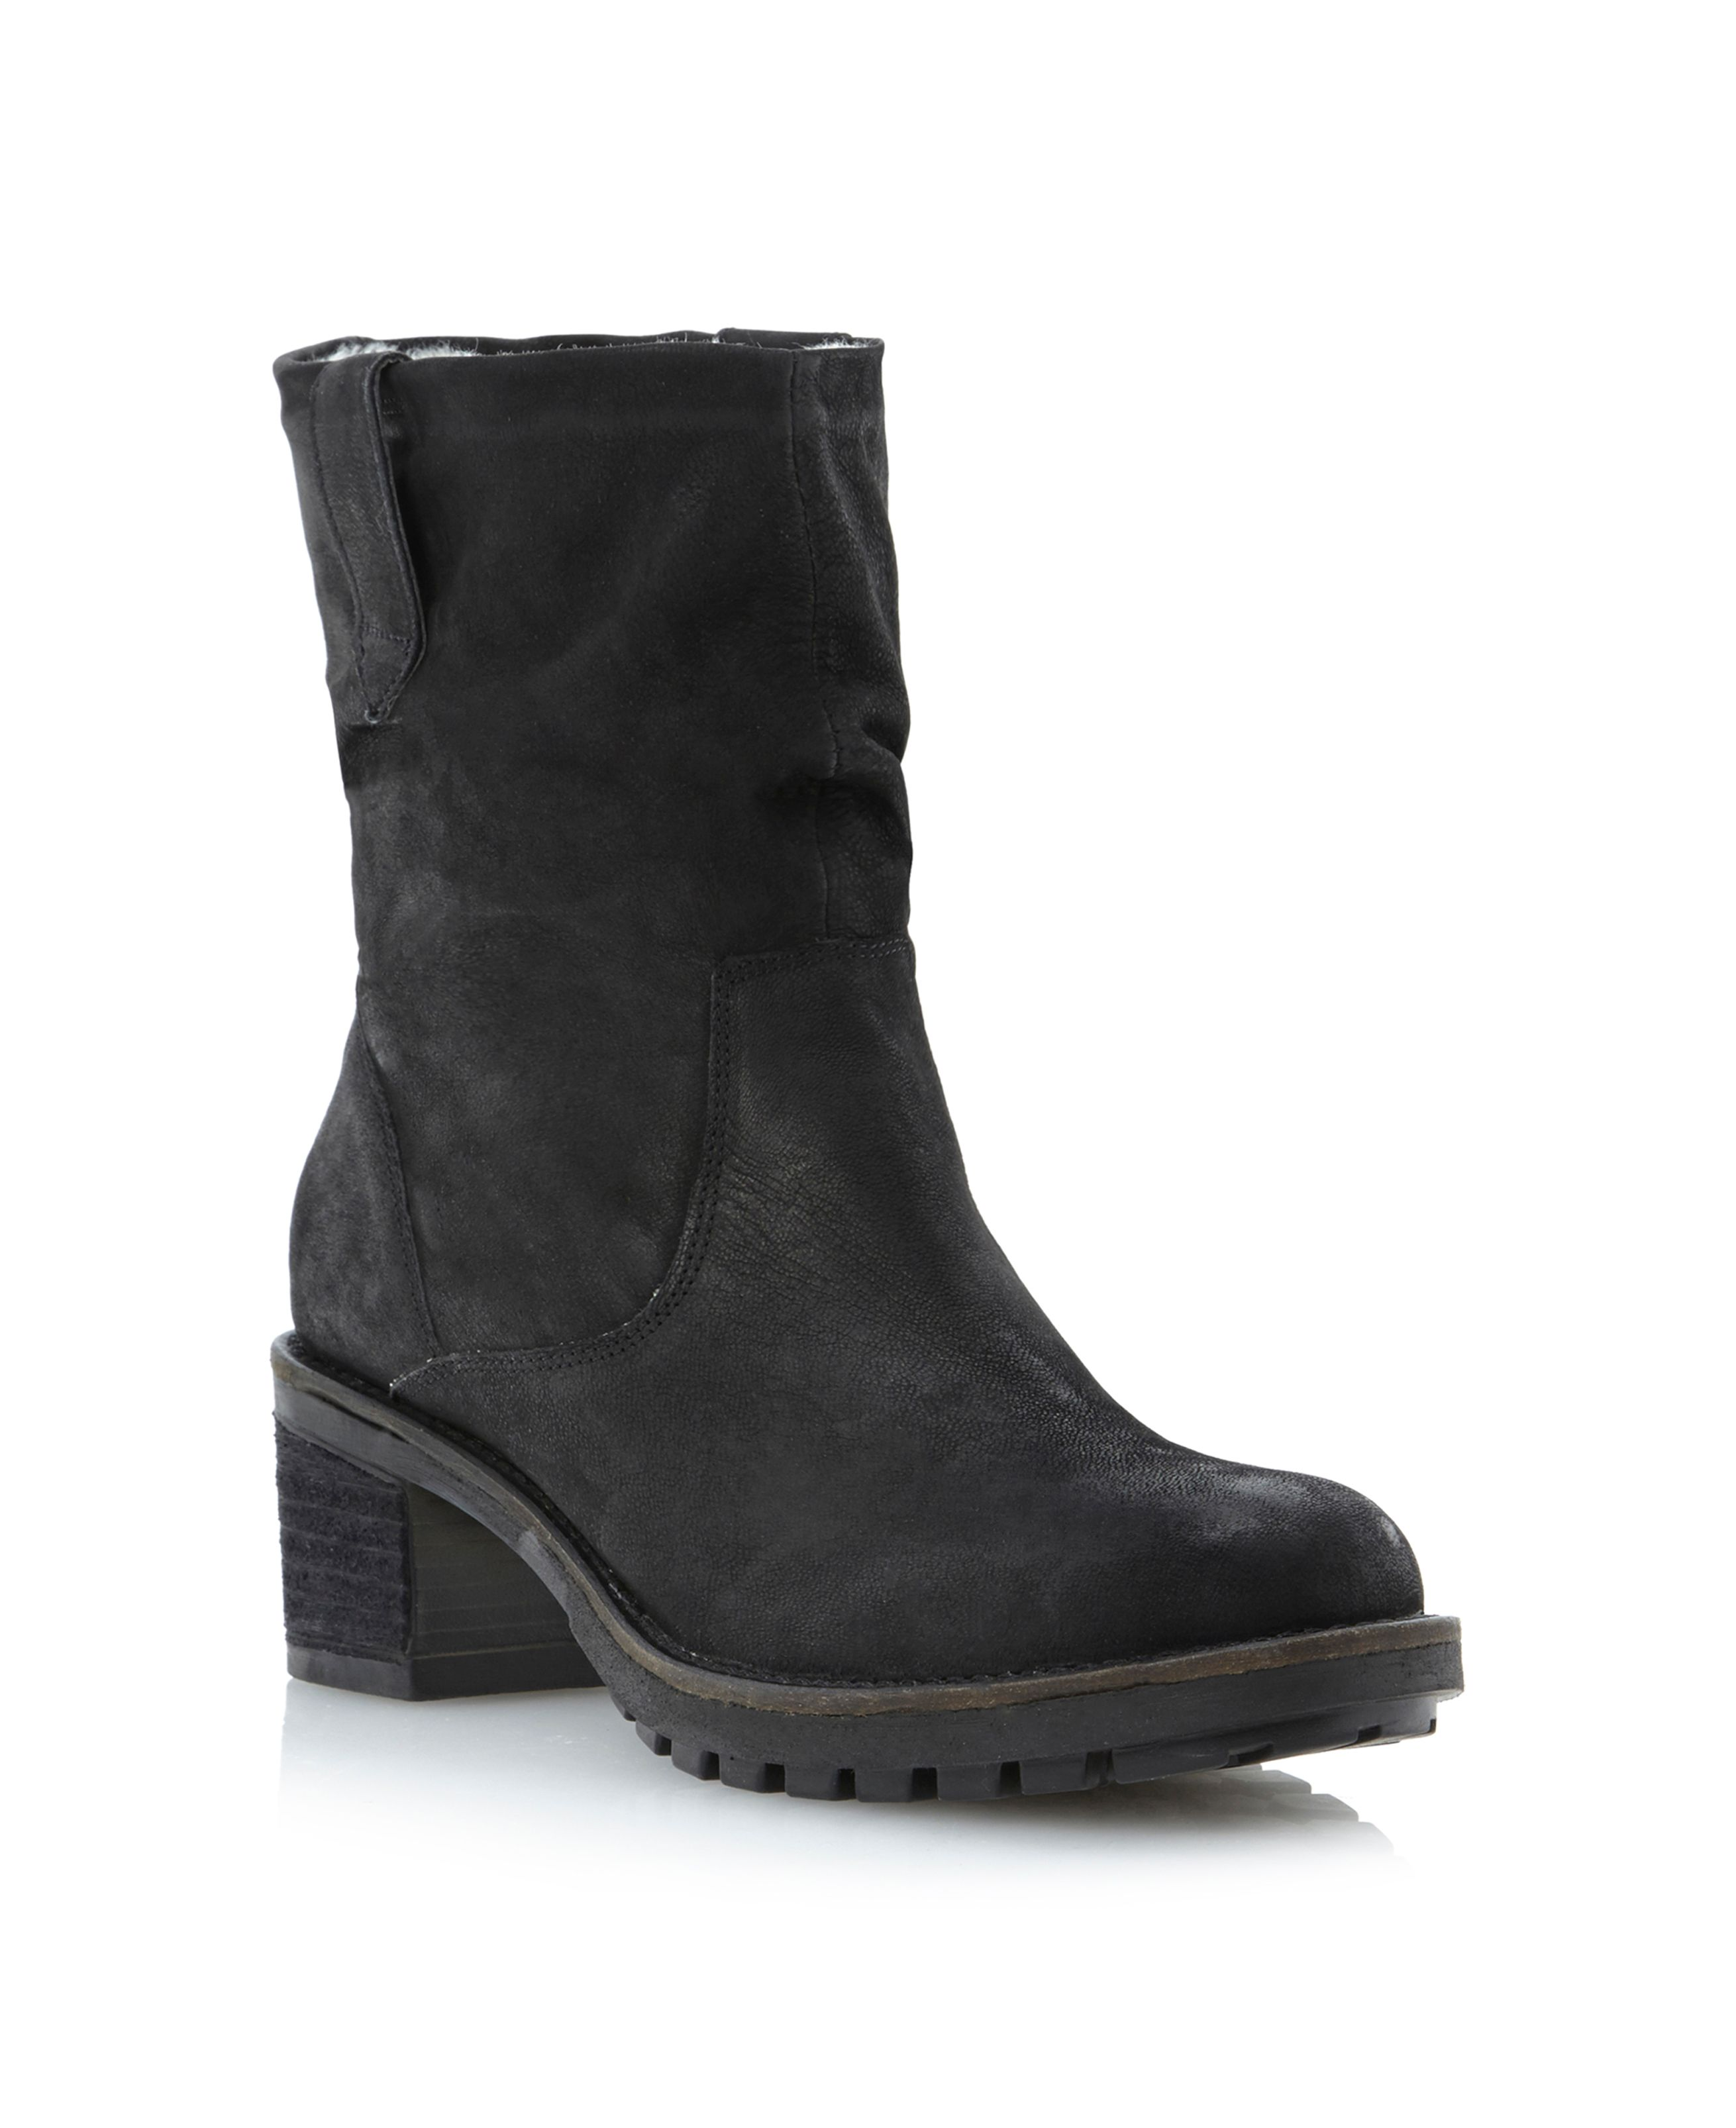 Pepps-shearling lined cleated sole boots